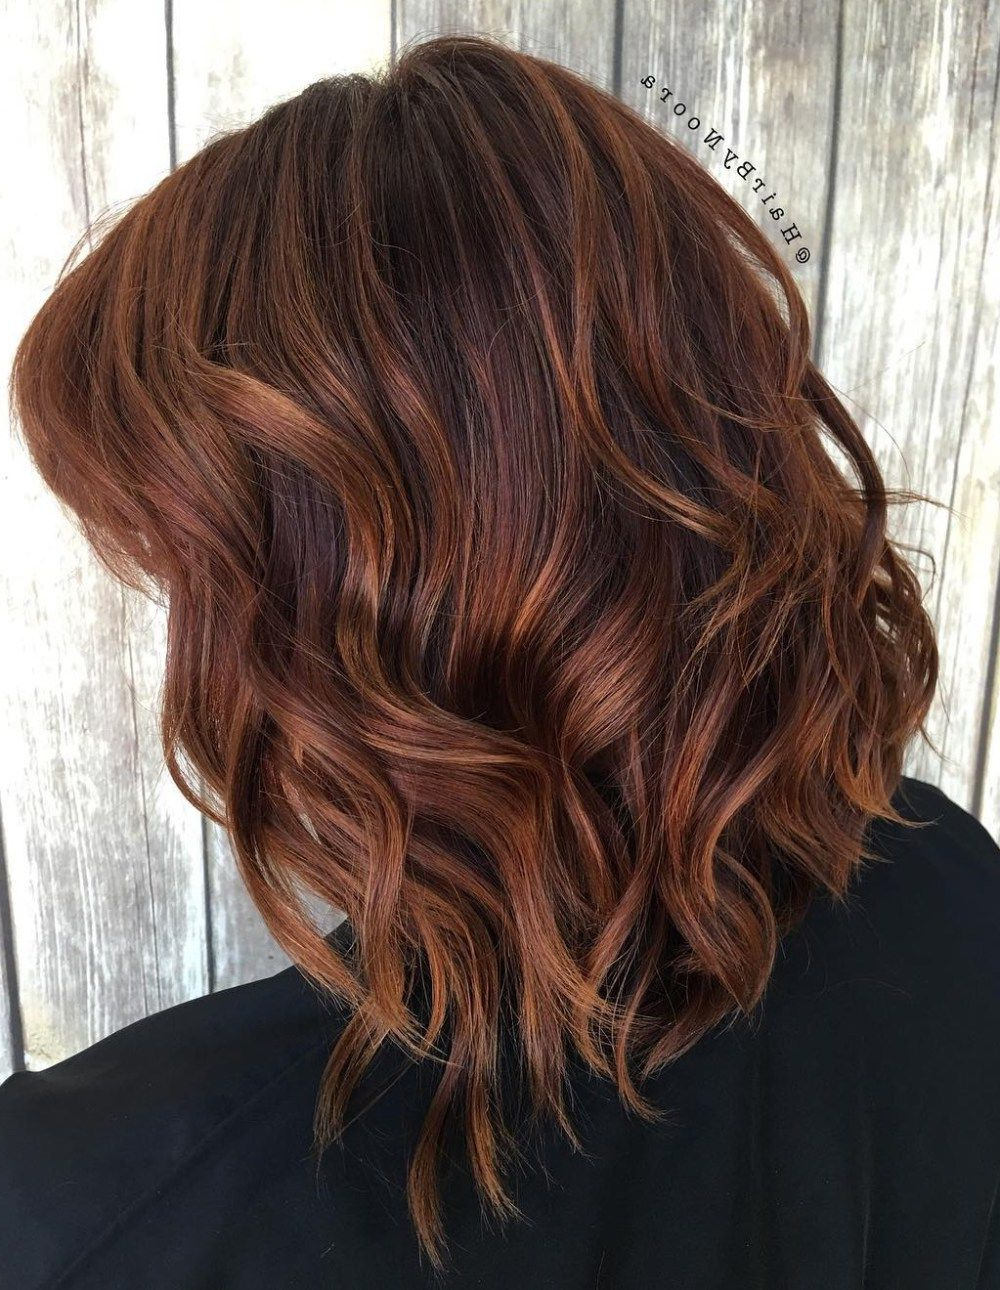 40 Unique Ways To Make Your Chestnut Brown Hair Pop (View 6 of 20)